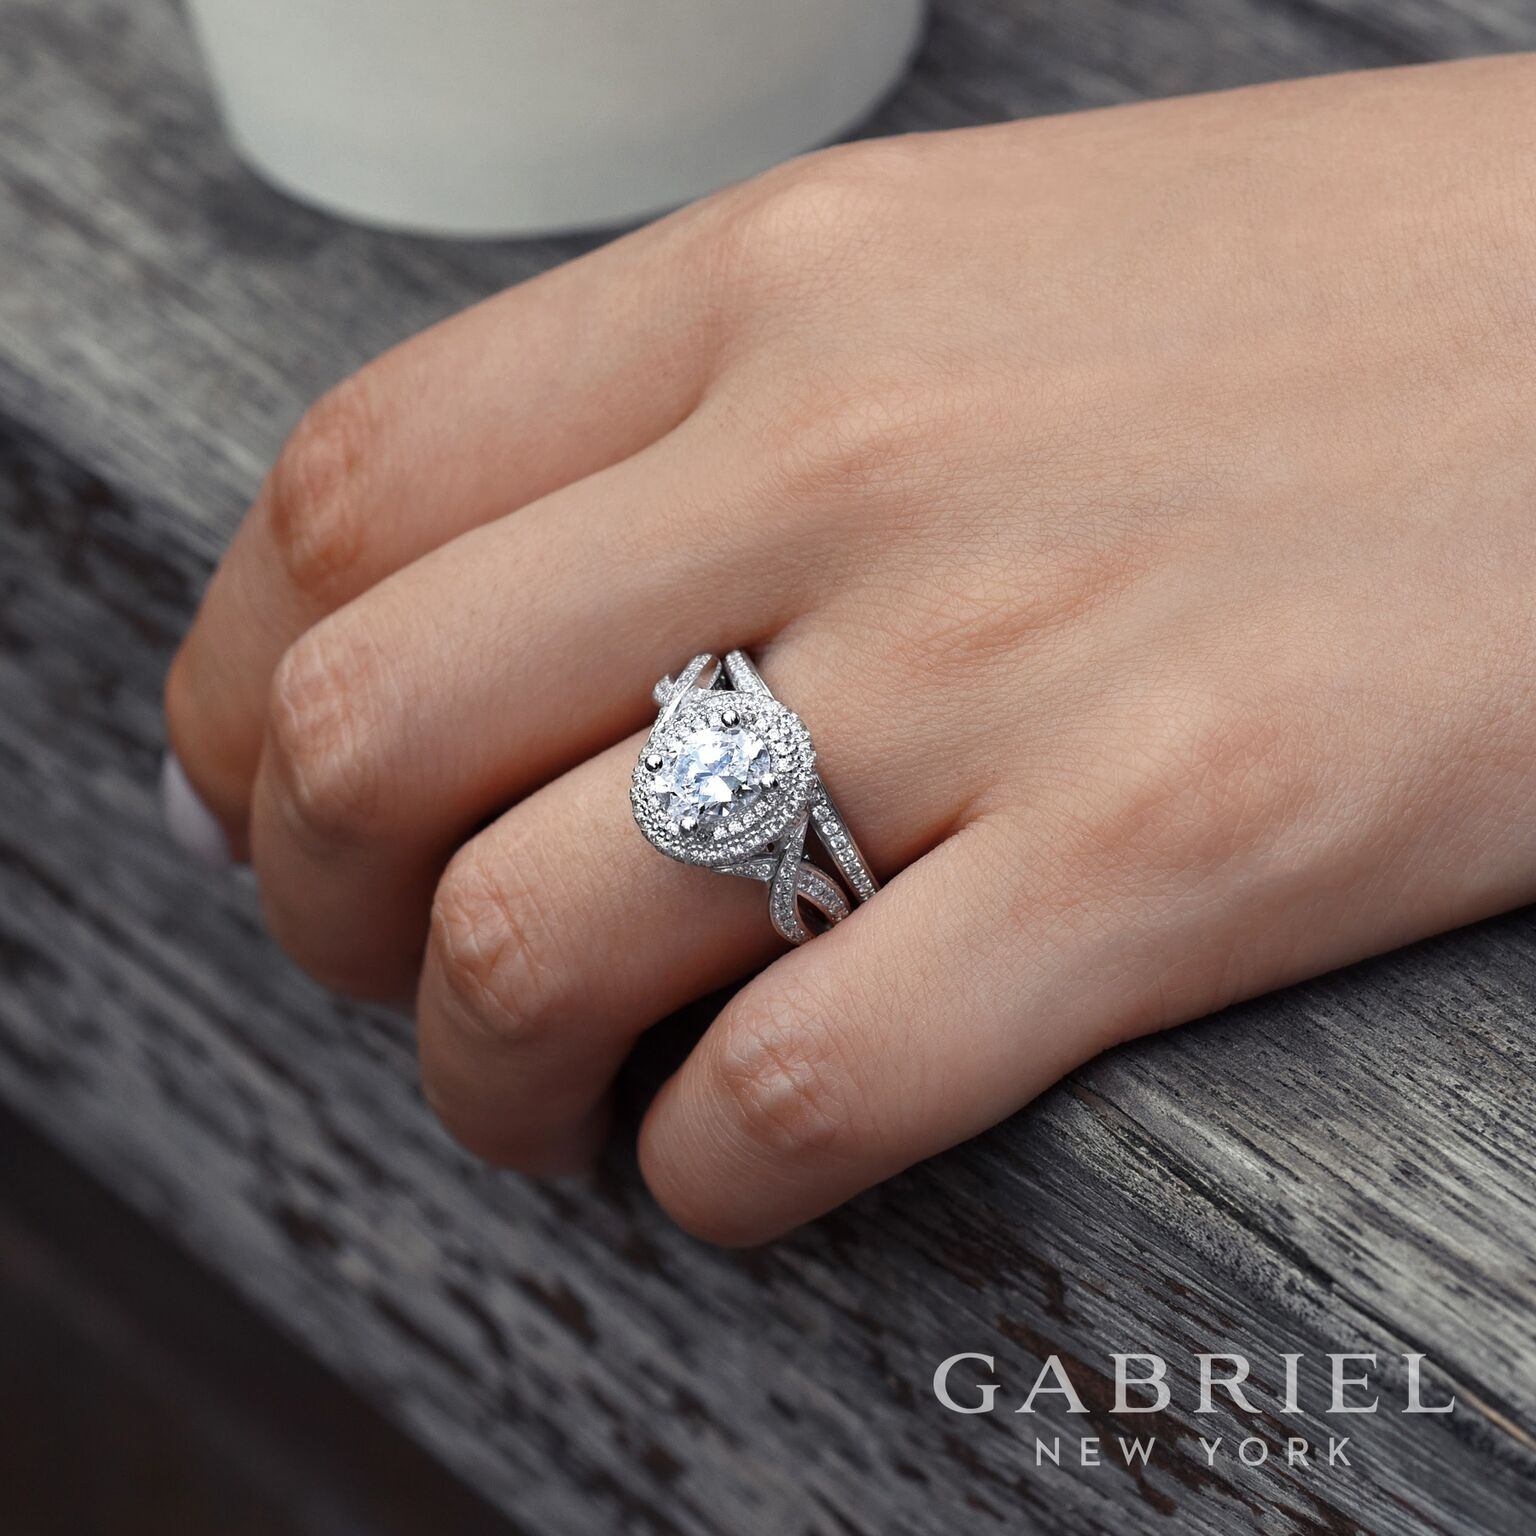 We Love this oval double halo twist engagement ring